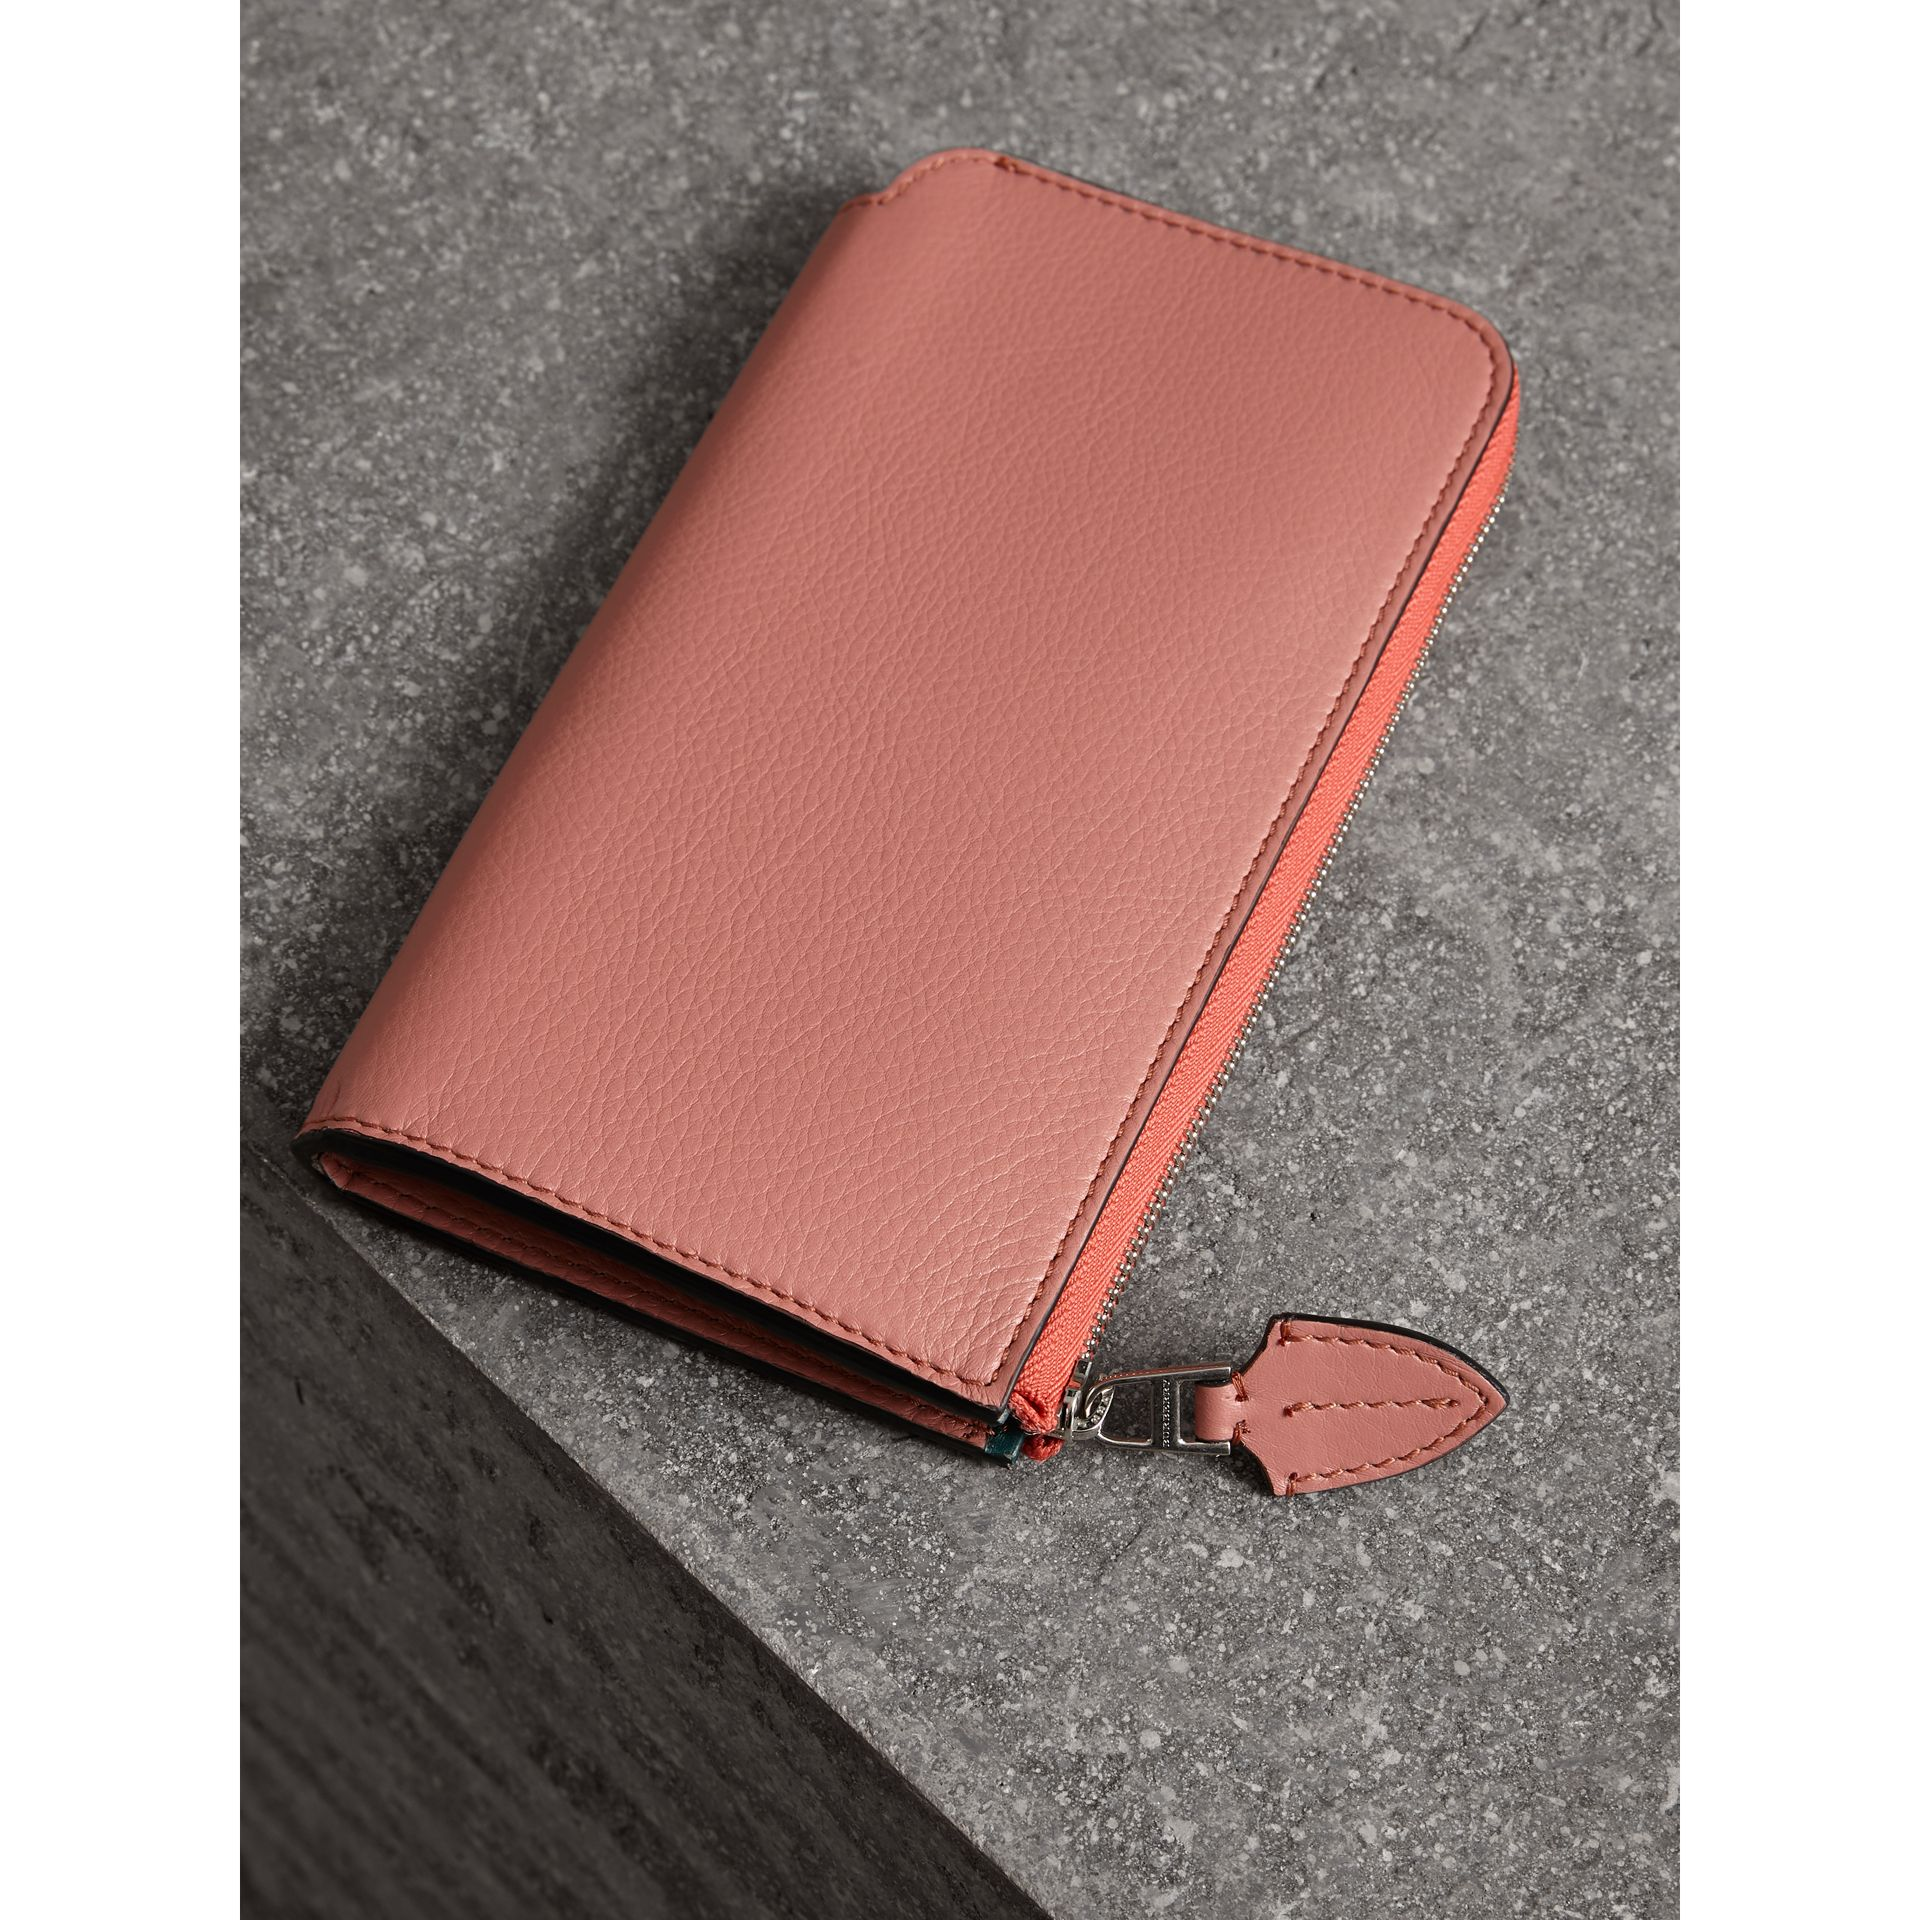 Two-tone Leather Ziparound Wallet and Coin Case in Dusty Rose - Women | Burberry - gallery image 2